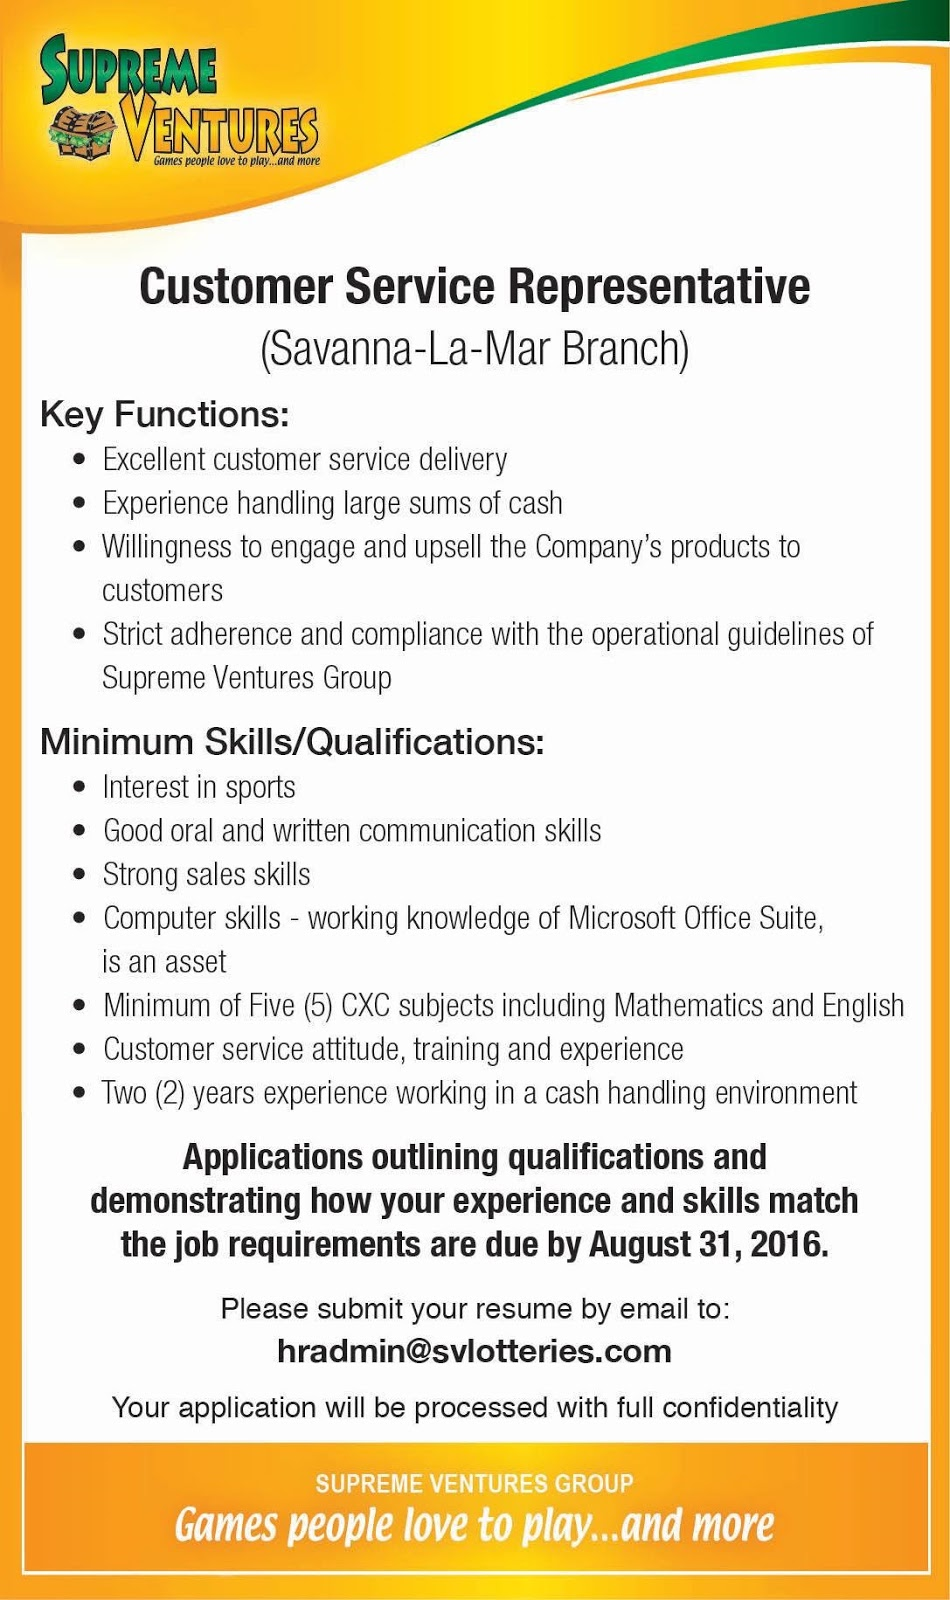 jobs postings caribbean customer service representative savanna customer service representative savanna la mar supreme ventures